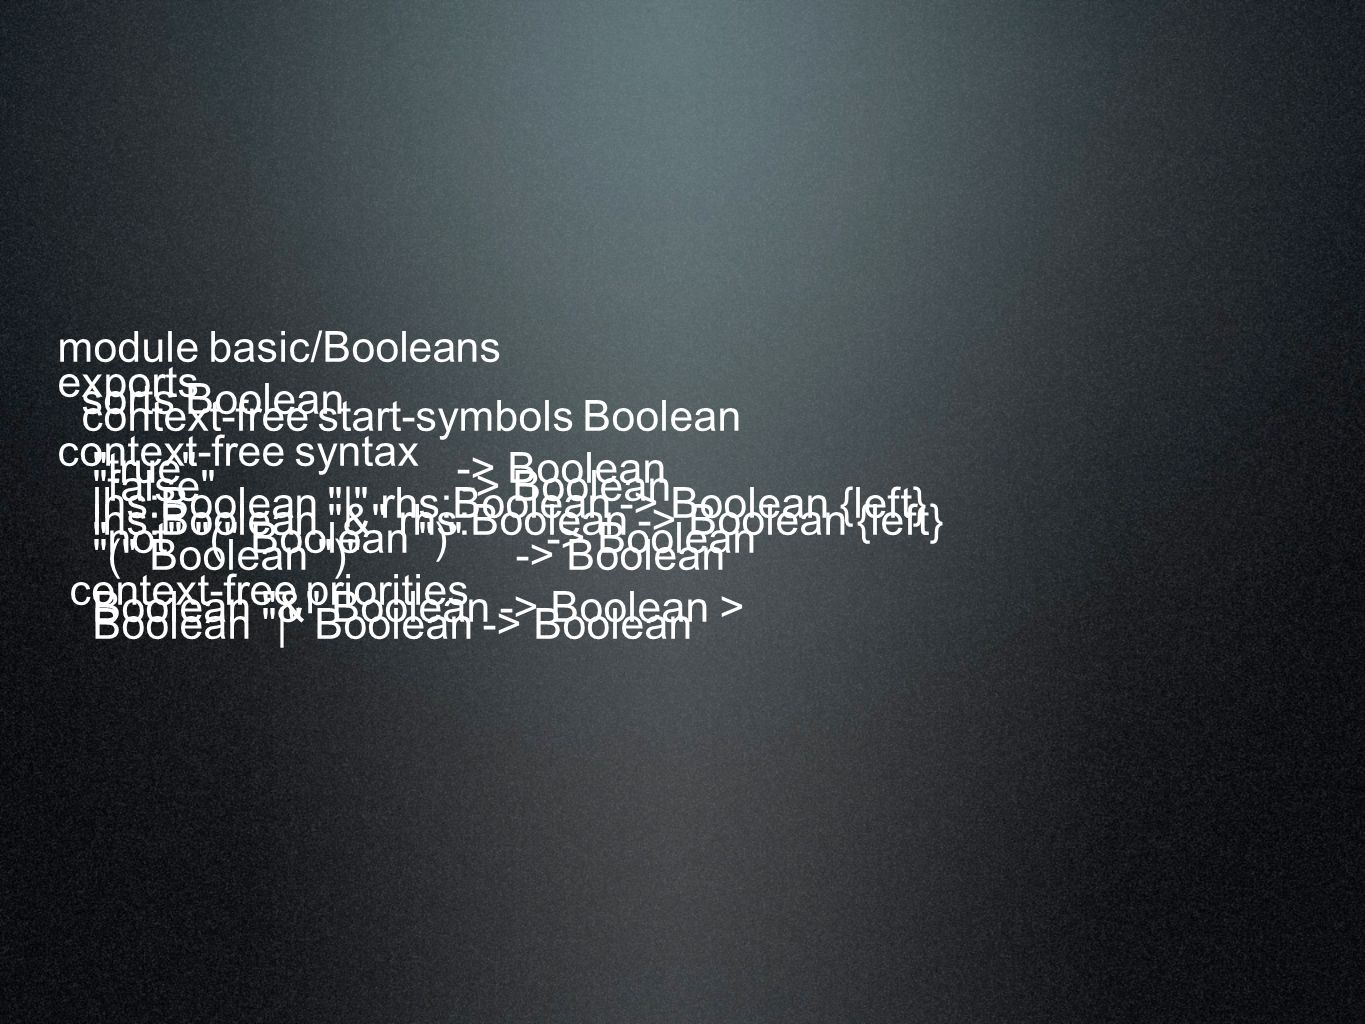 module basic/Booleans exports sorts Boolean context-free start-symbols Boolean context-free syntax true -> Boolean false -> Boolean lhs:Boolean | rhs:Boolean -> Boolean {left} lhs:Boolean & rhs:Boolean -> Boolean {left} not ( Boolean ) -> Boolean ( Boolean ) -> Boolean context-free priorities Boolean & Boolean -> Boolean > Boolean | Boolean -> Boolean